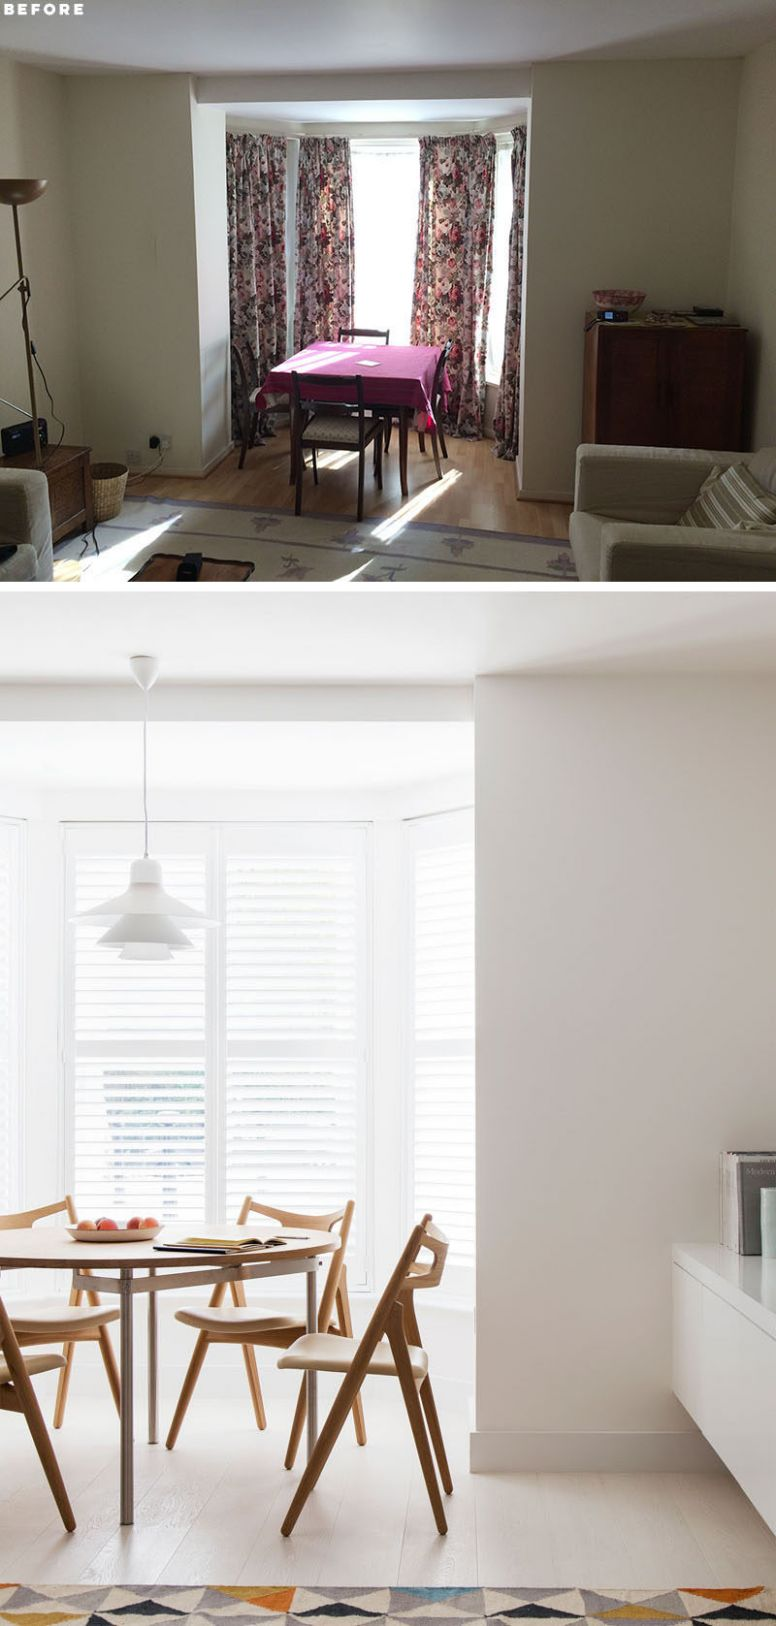 Before And After - This Small Apartment In London Was Redesigned ...